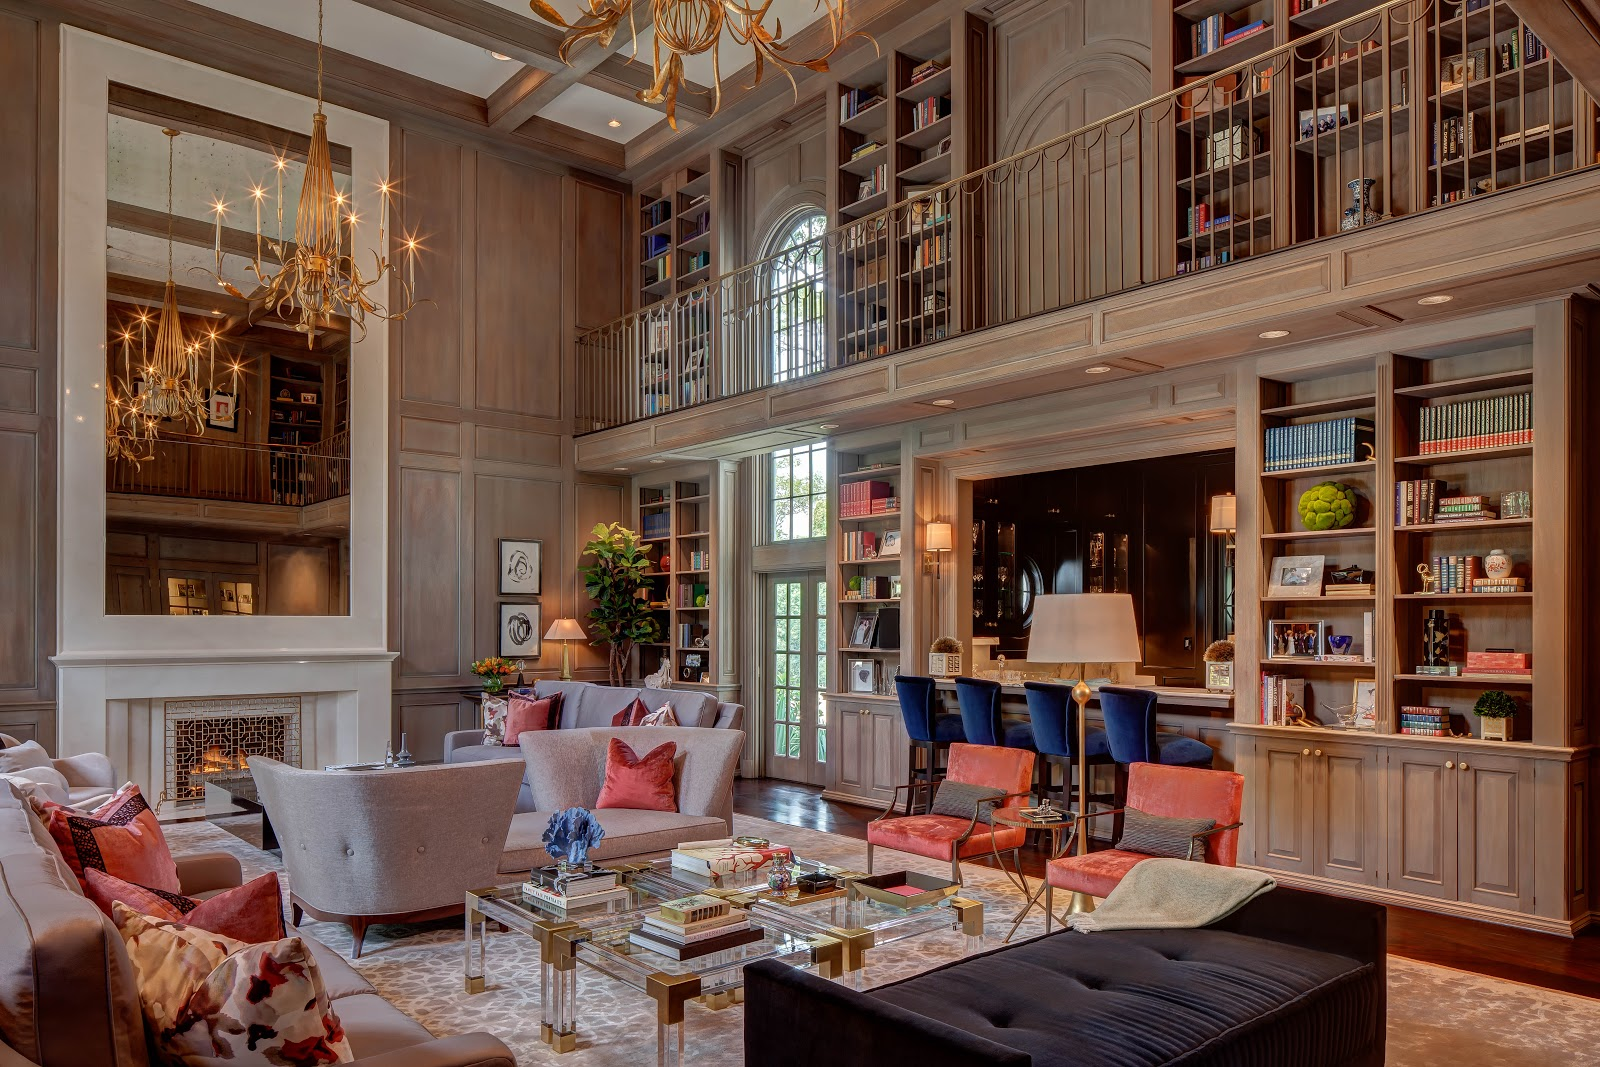 Grand paneled library with gold chandeliers - Ohorona24.in.ua Interior